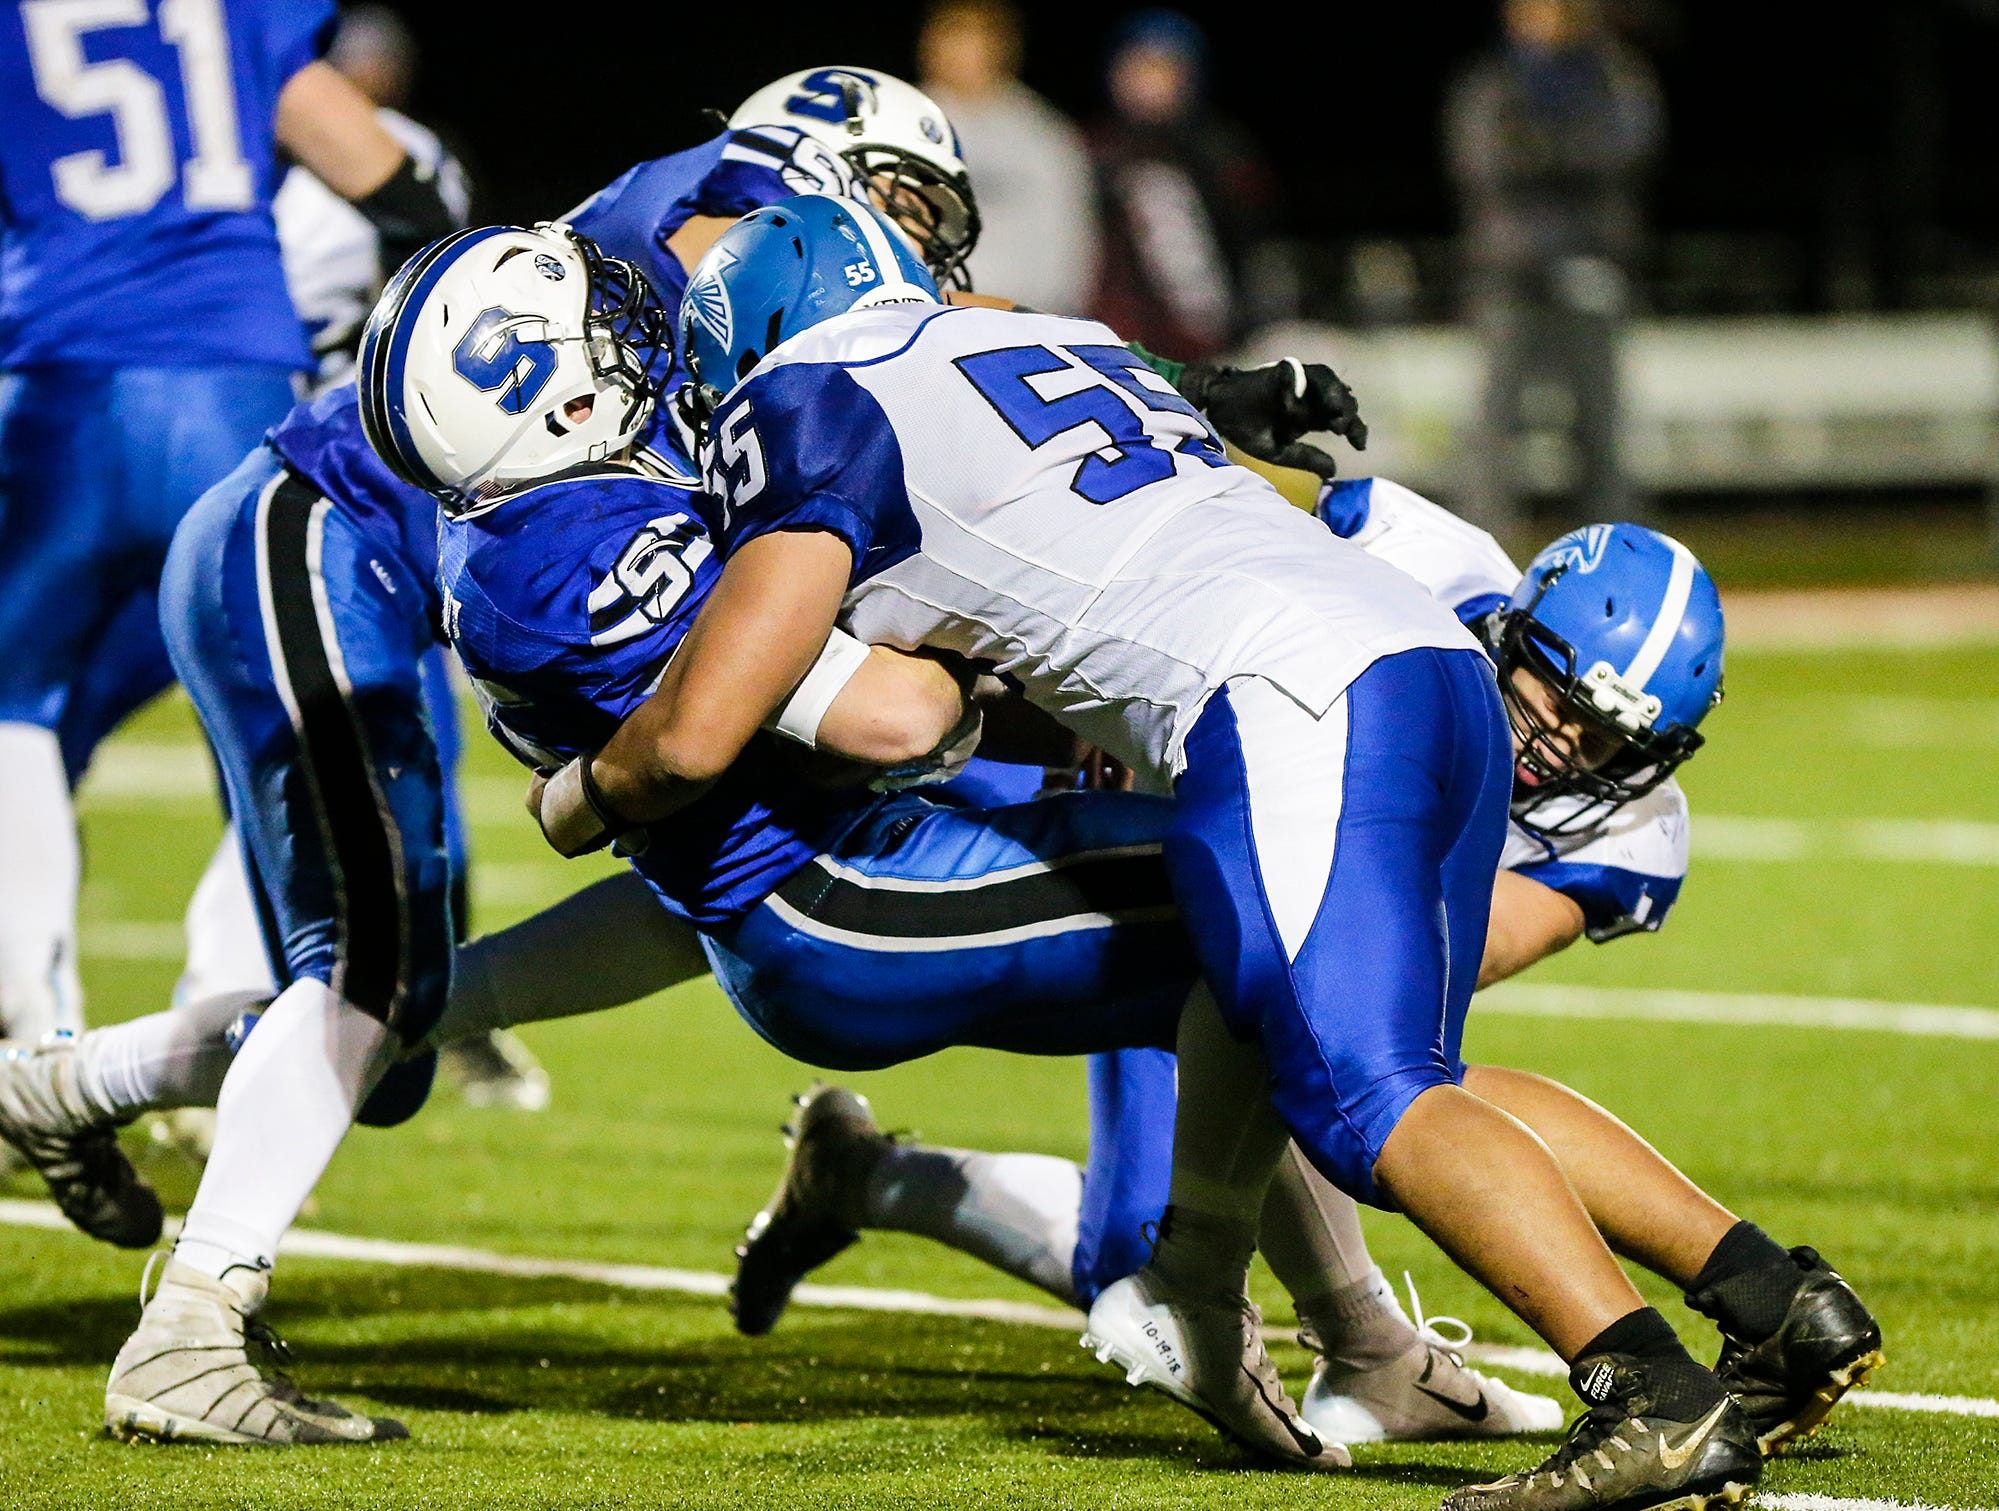 St. Mary's Springs Academy football's Marcus Orlandoni gets tackled by Amherst High School's John Farkas Friday, November 2, 2018 during their WIAA division 5 level 3 playoff game played in Lomira, Wisconsin. Springs won the game 12-0. Doug Raflik/USA TODAY NETWORK-Wisconsin